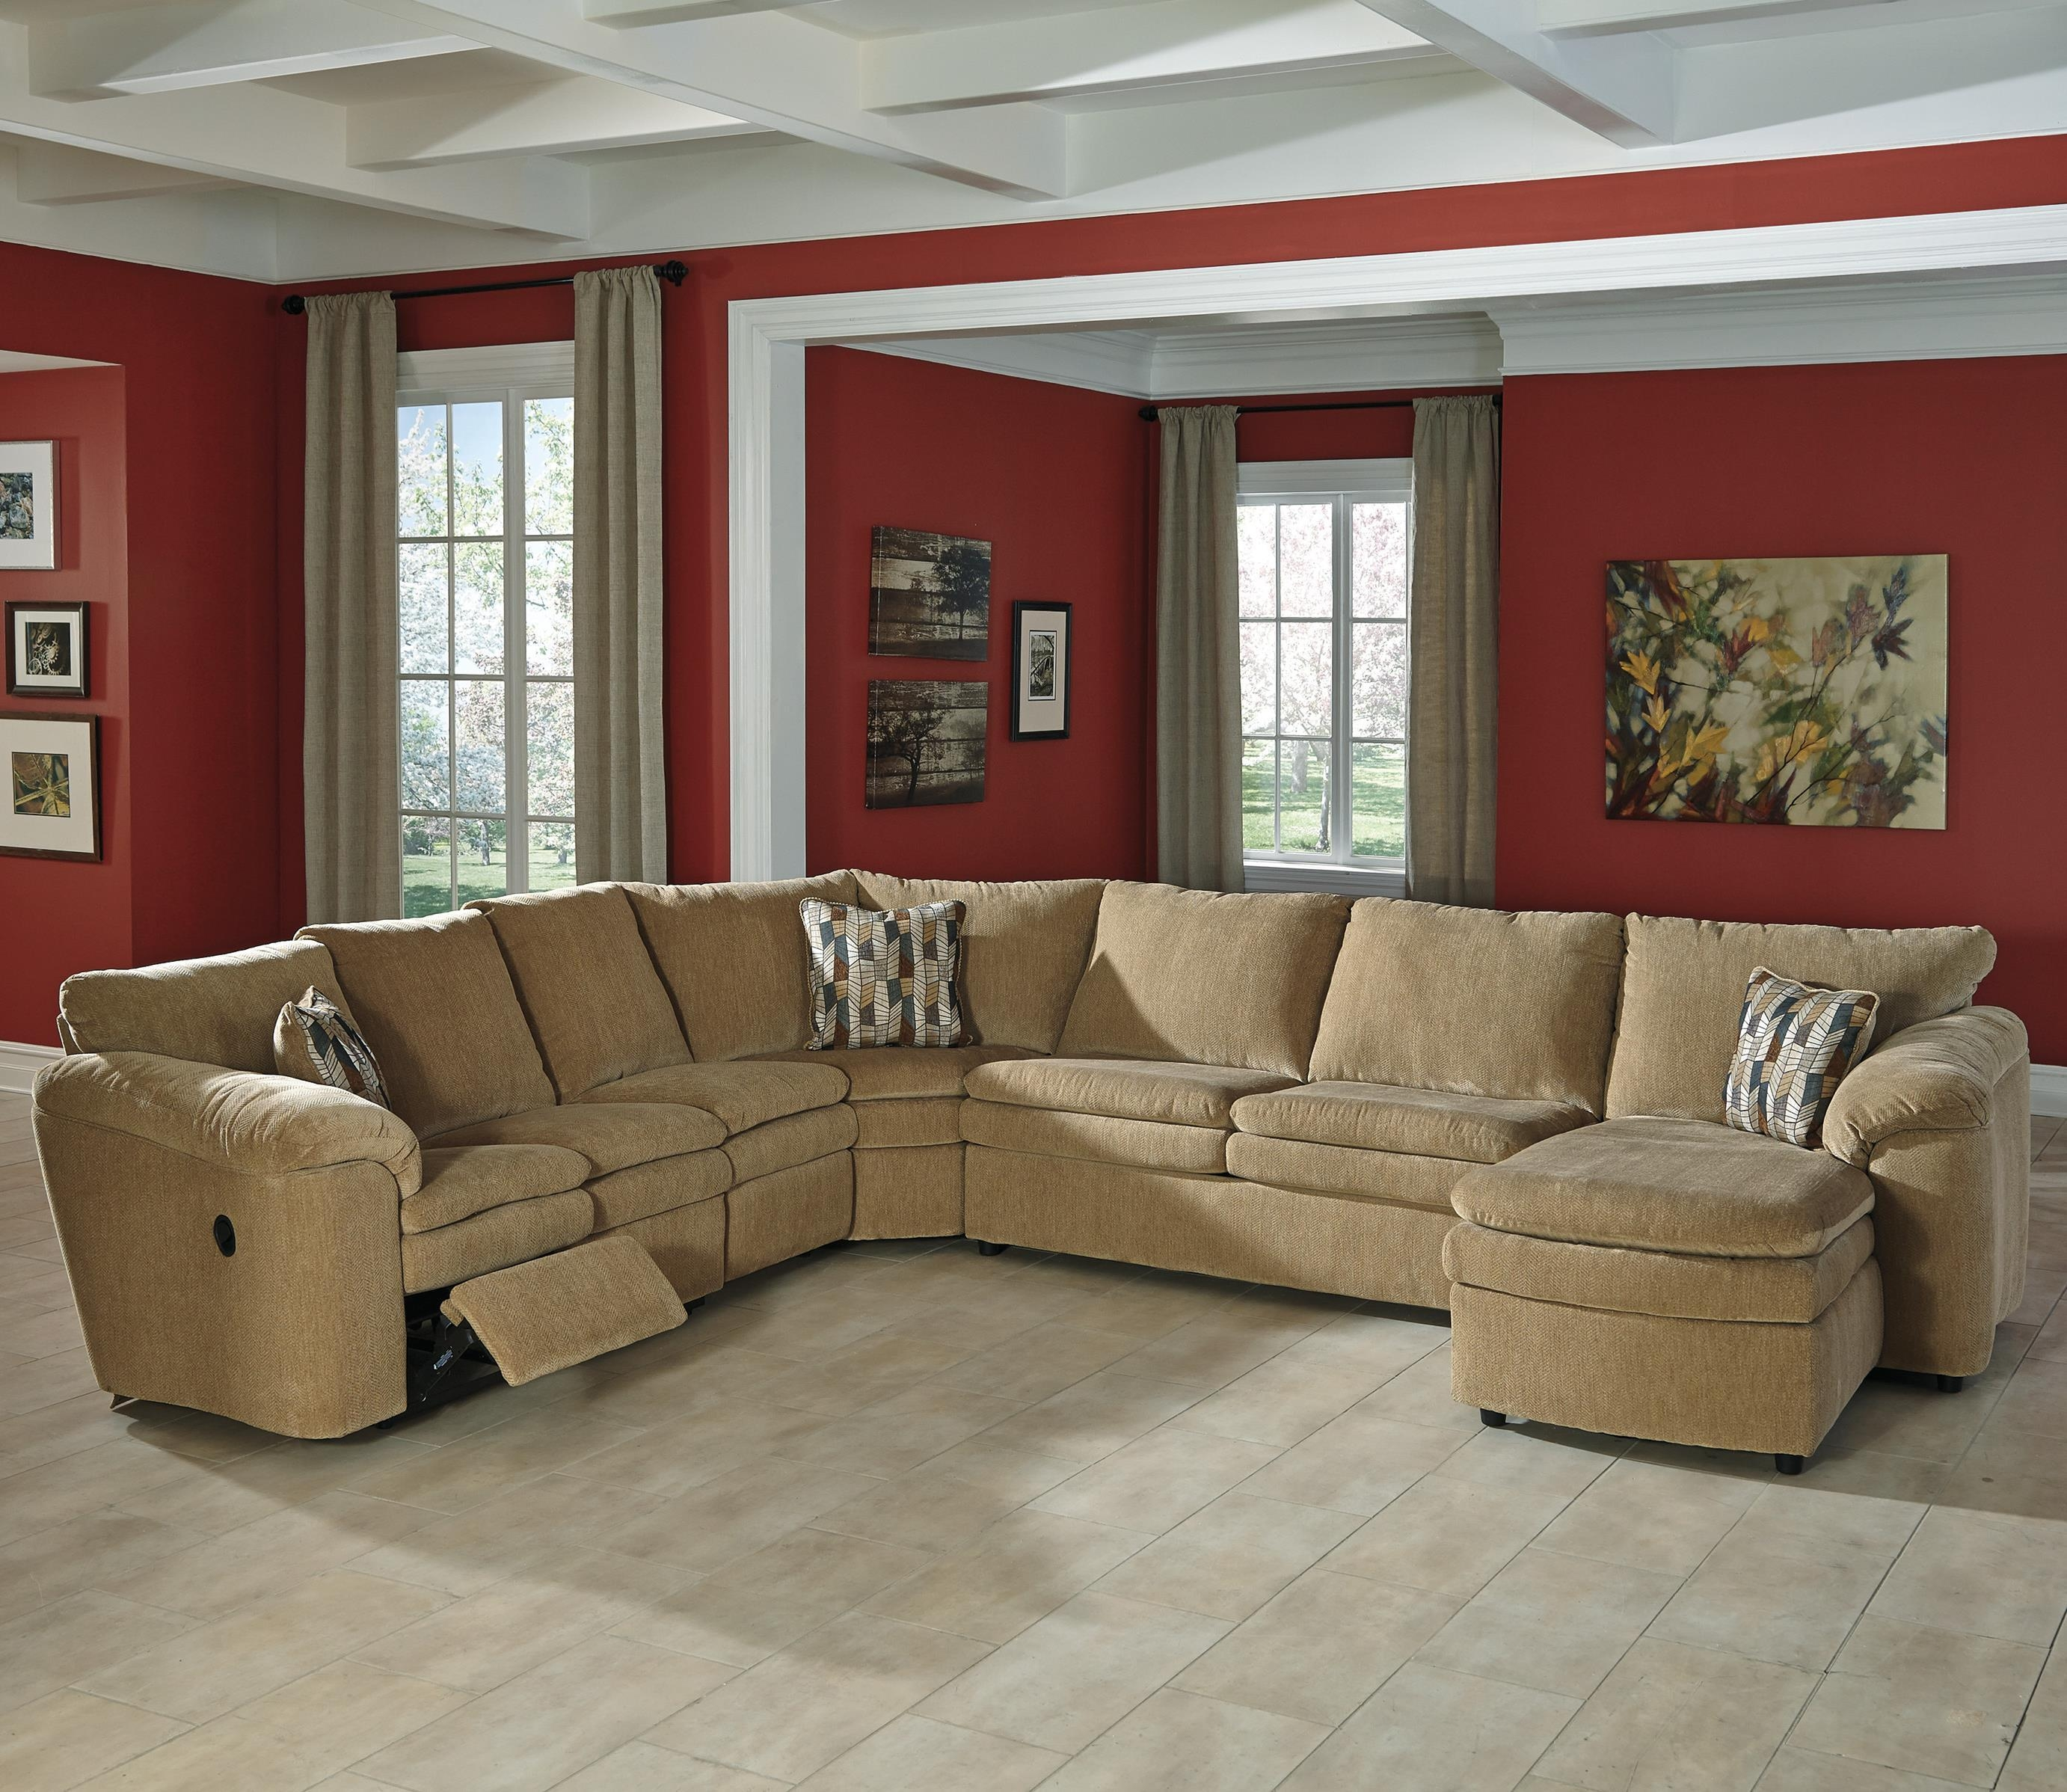 Signature Designashley Coats Casual Contemporary 5 Piece Pertaining To Sectional With Recliner And Sleeper (View 5 of 20)